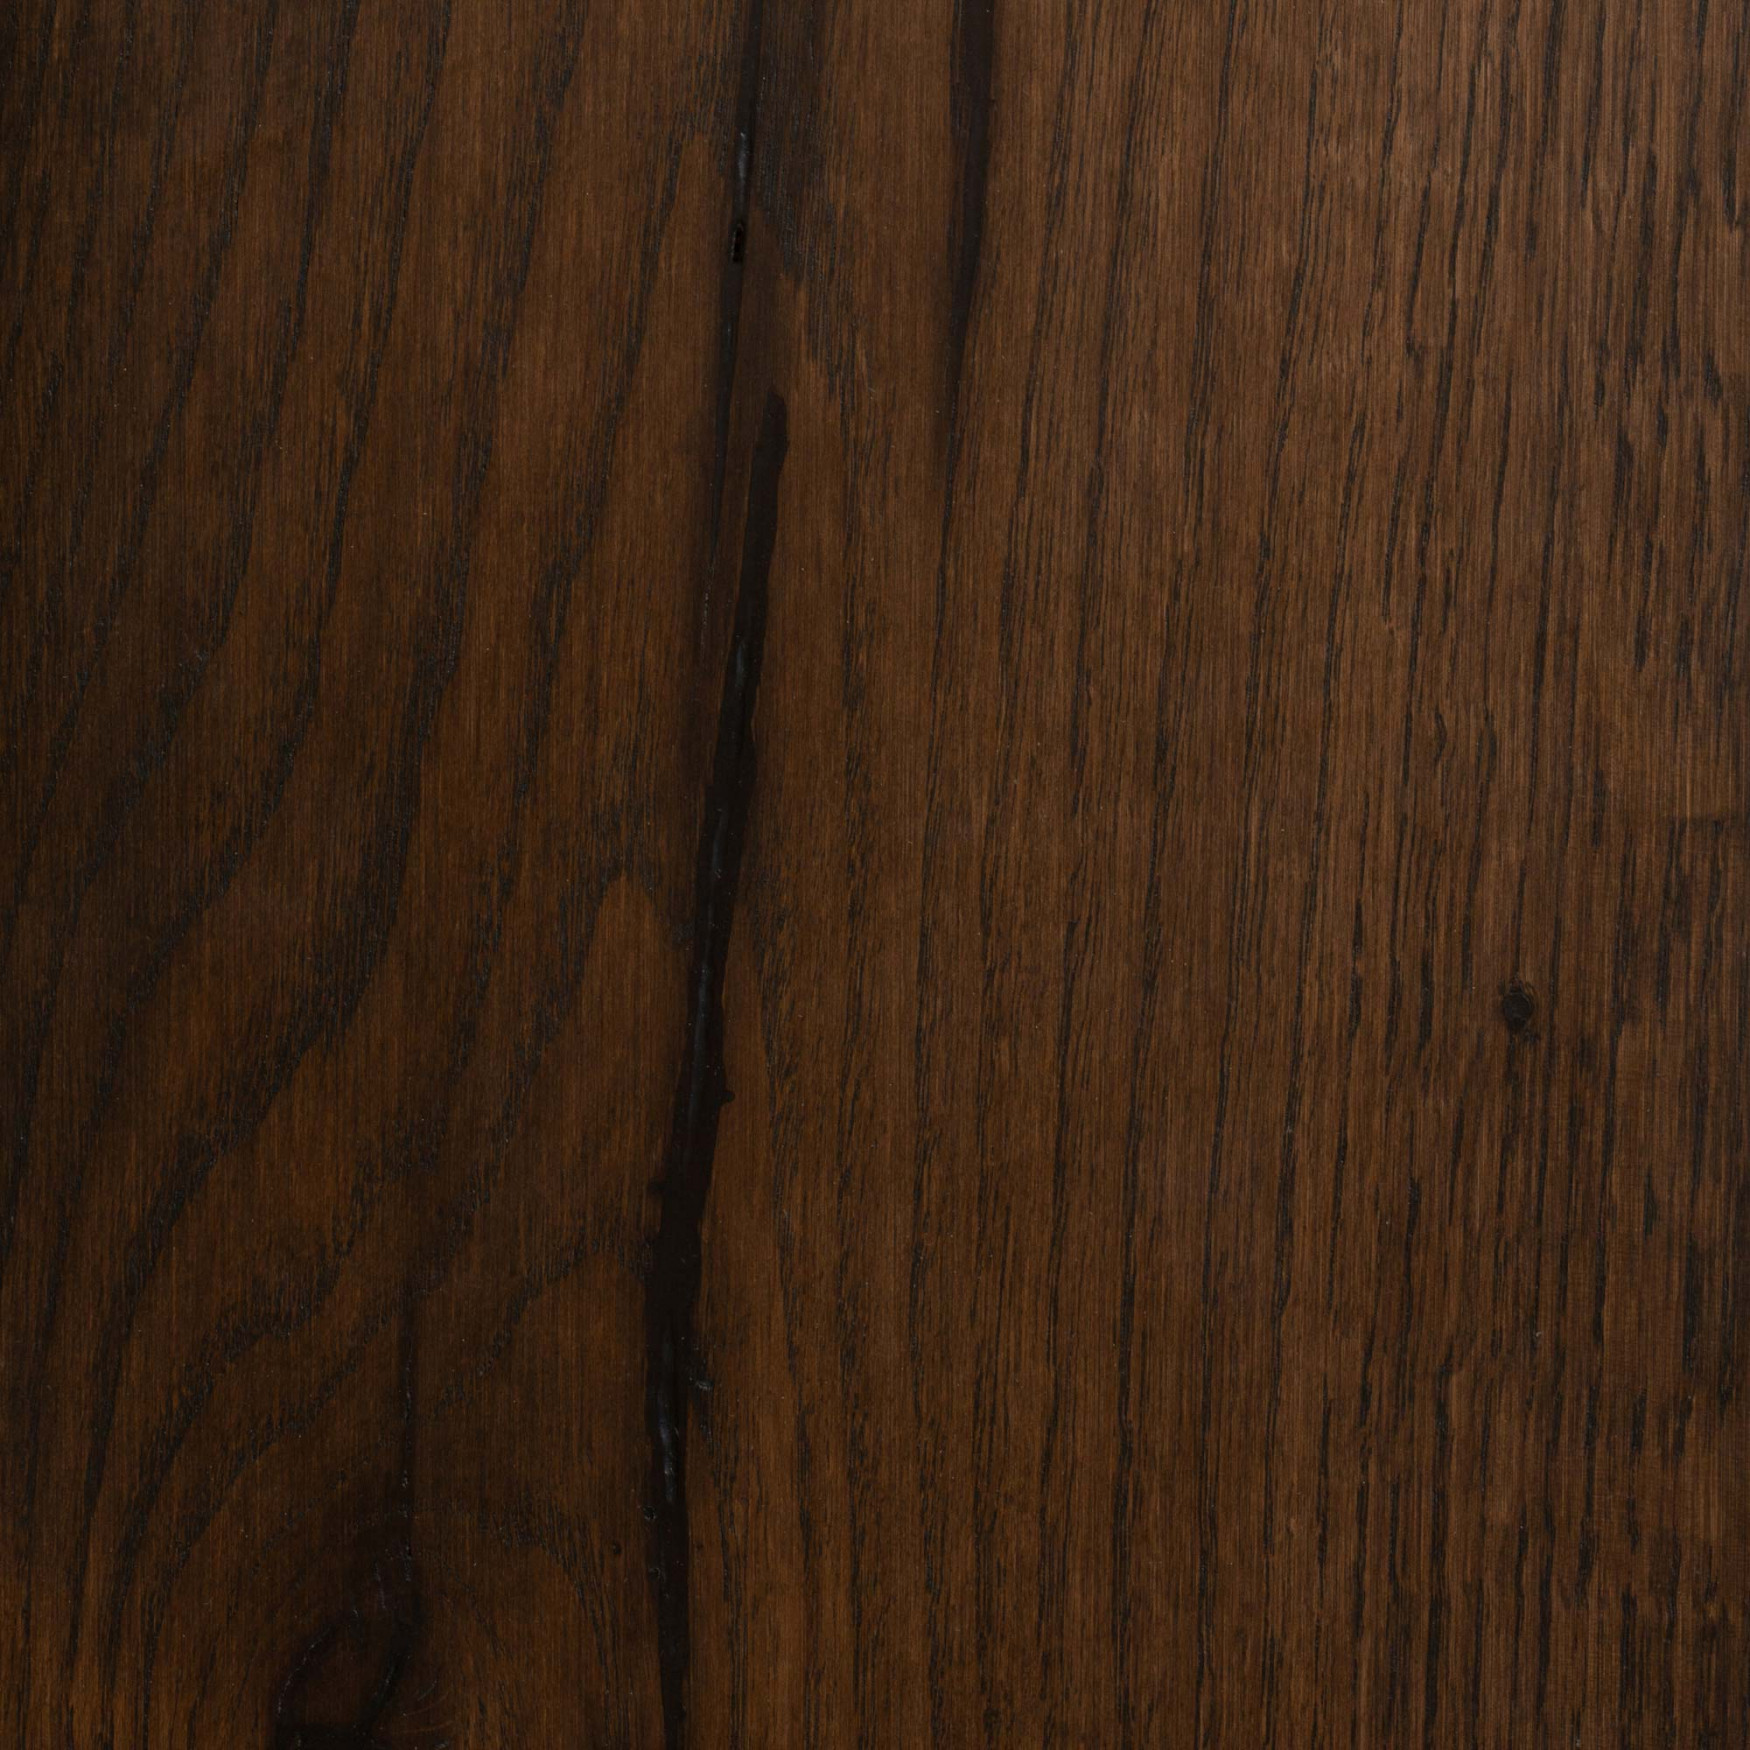 Element7-wide-plank-samples-Reclaimed-O-Scuro.2